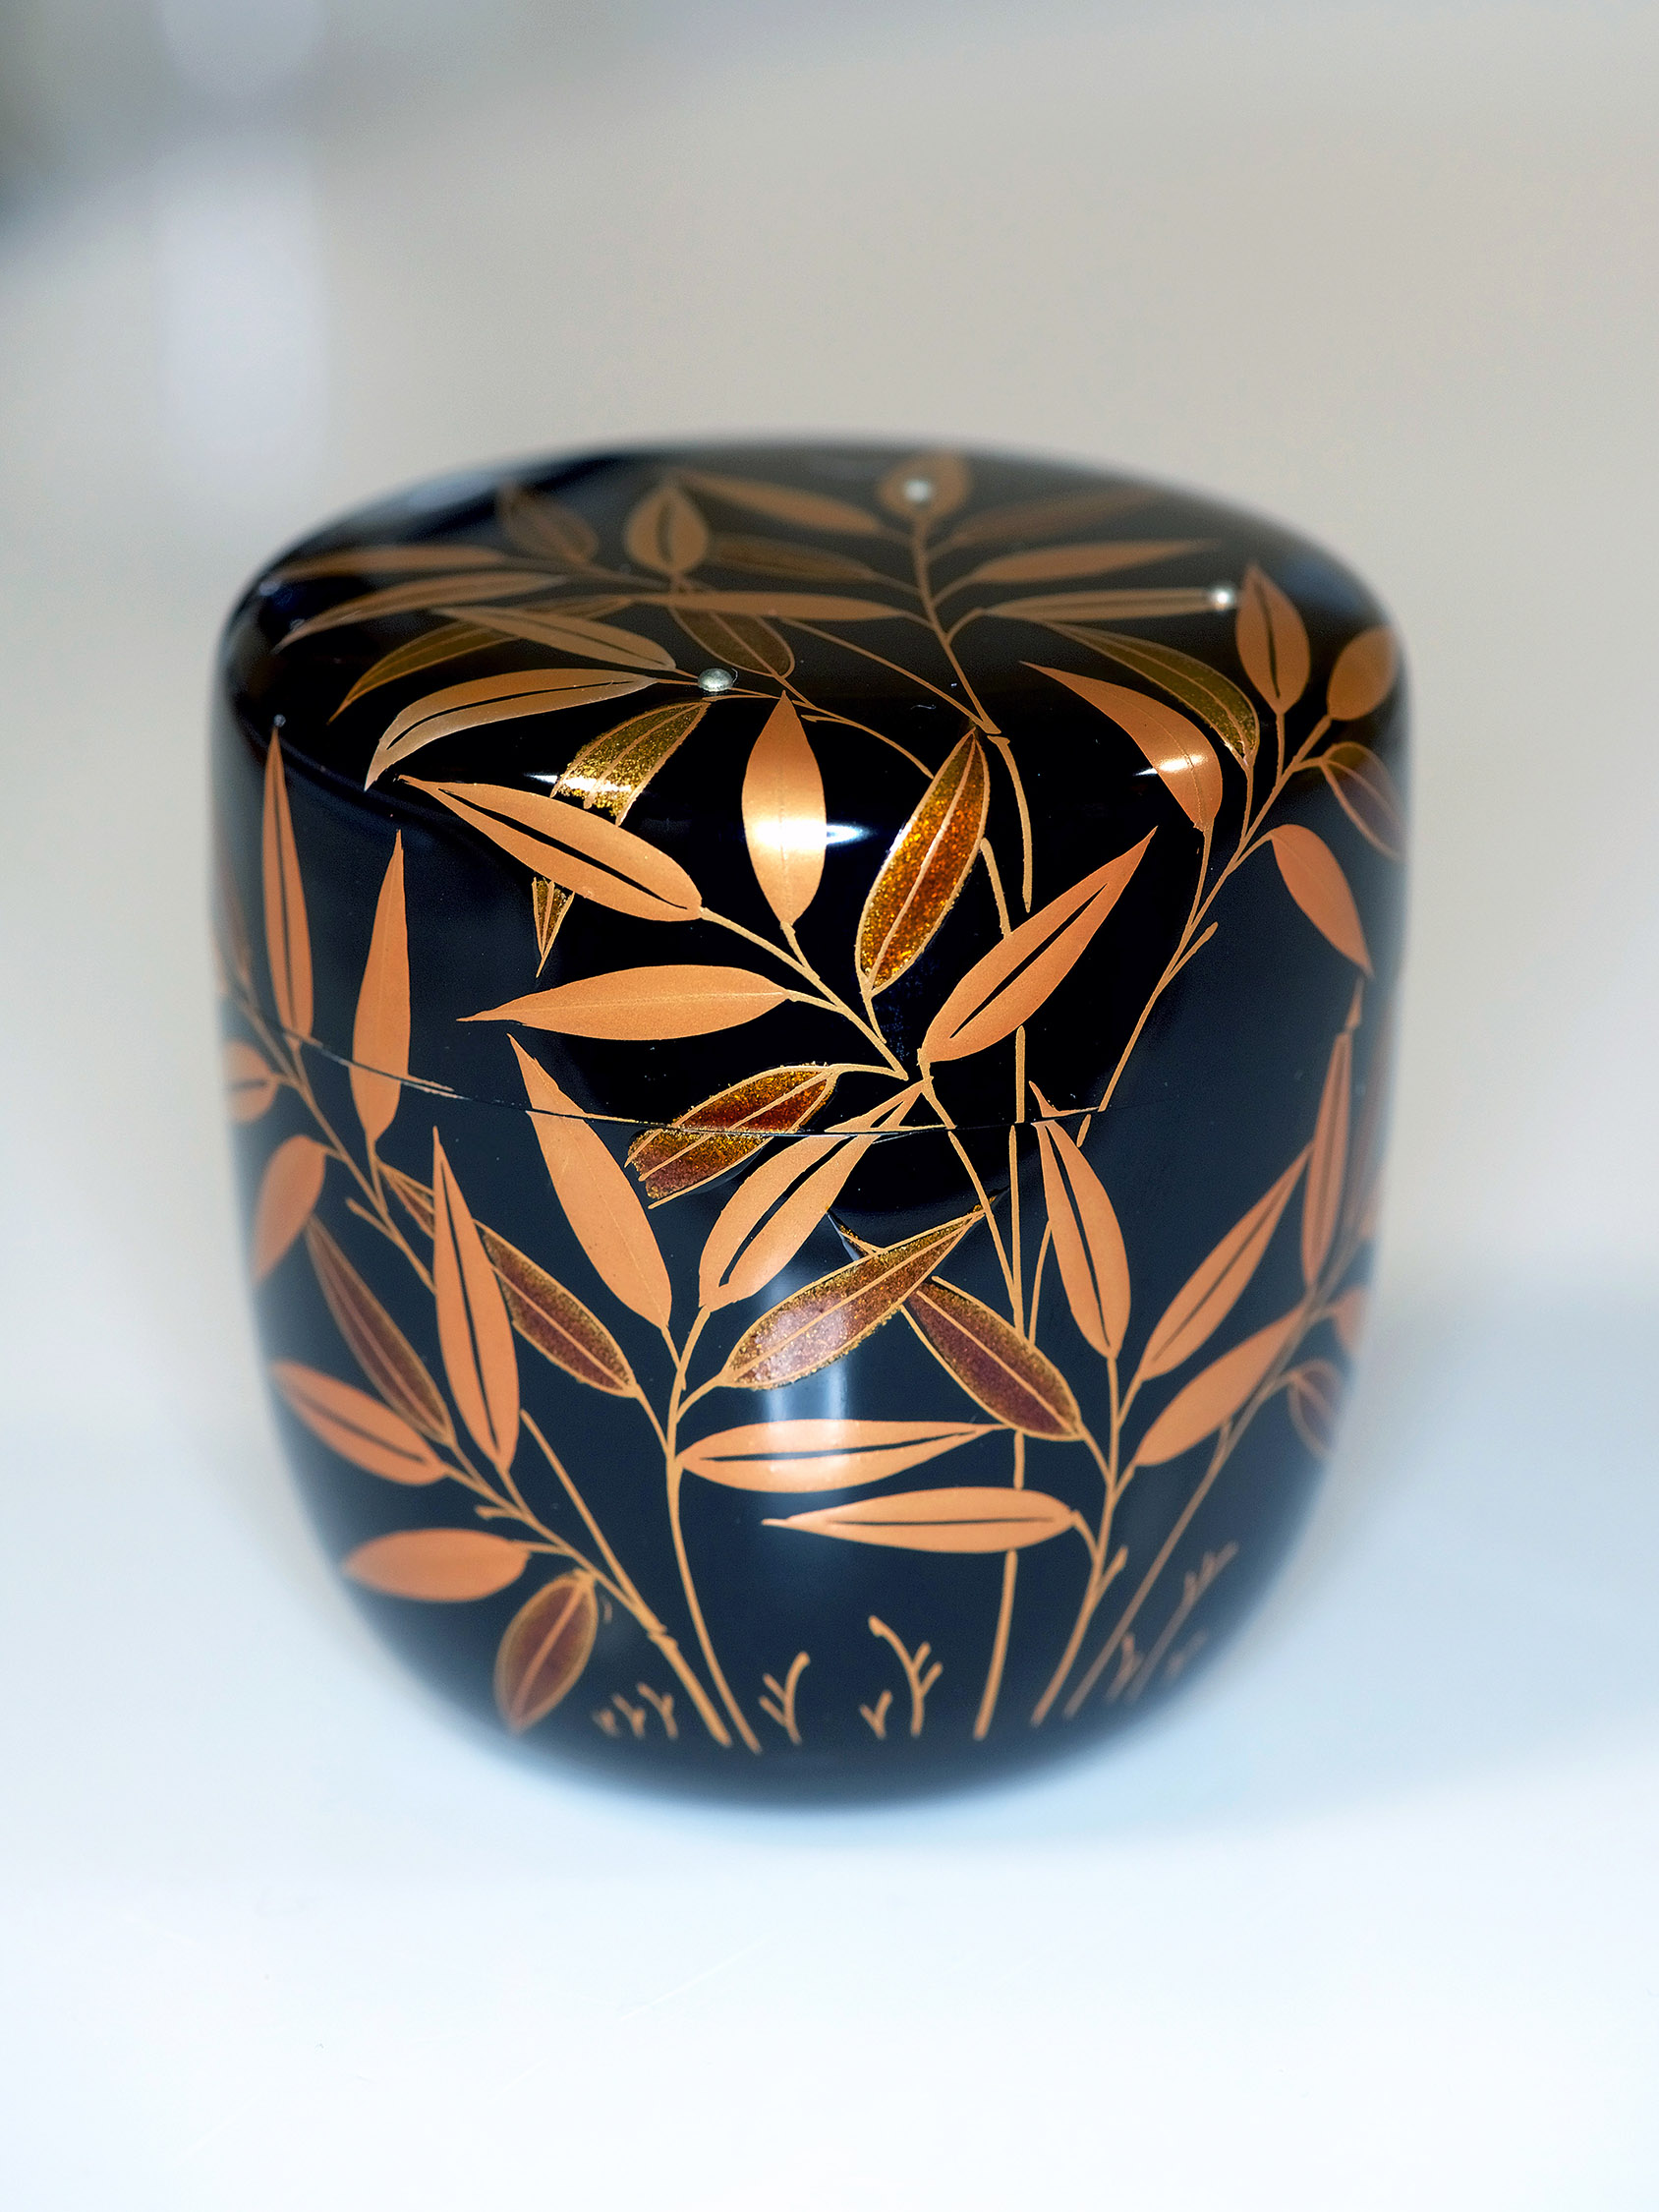 Japanese Lacquerware on wood, Image source: Shutterstock